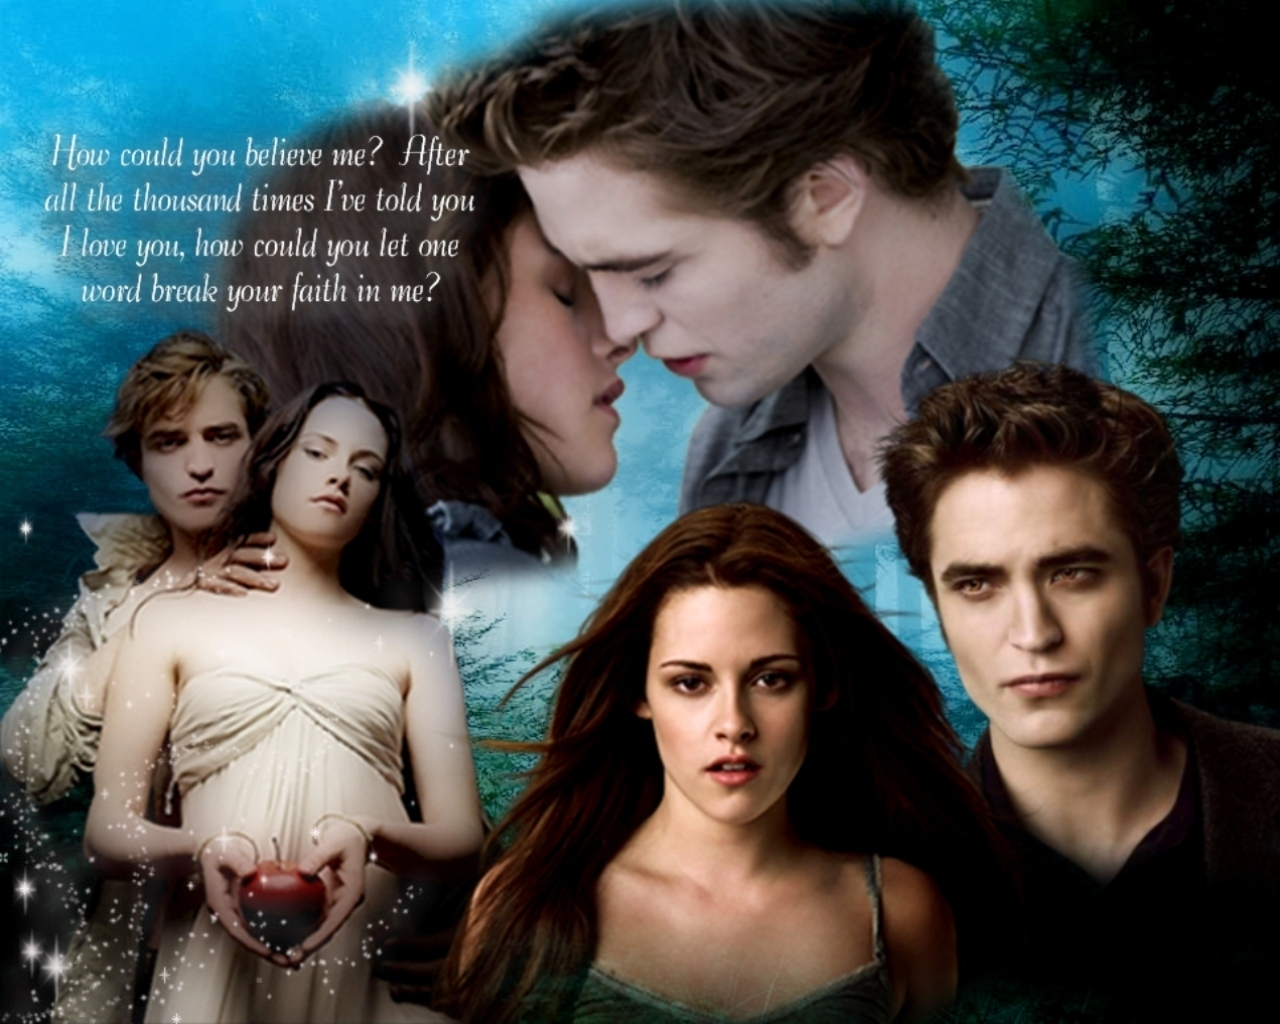 Edward and Bella Twilight Twilight's Robert & Kristen Love Story